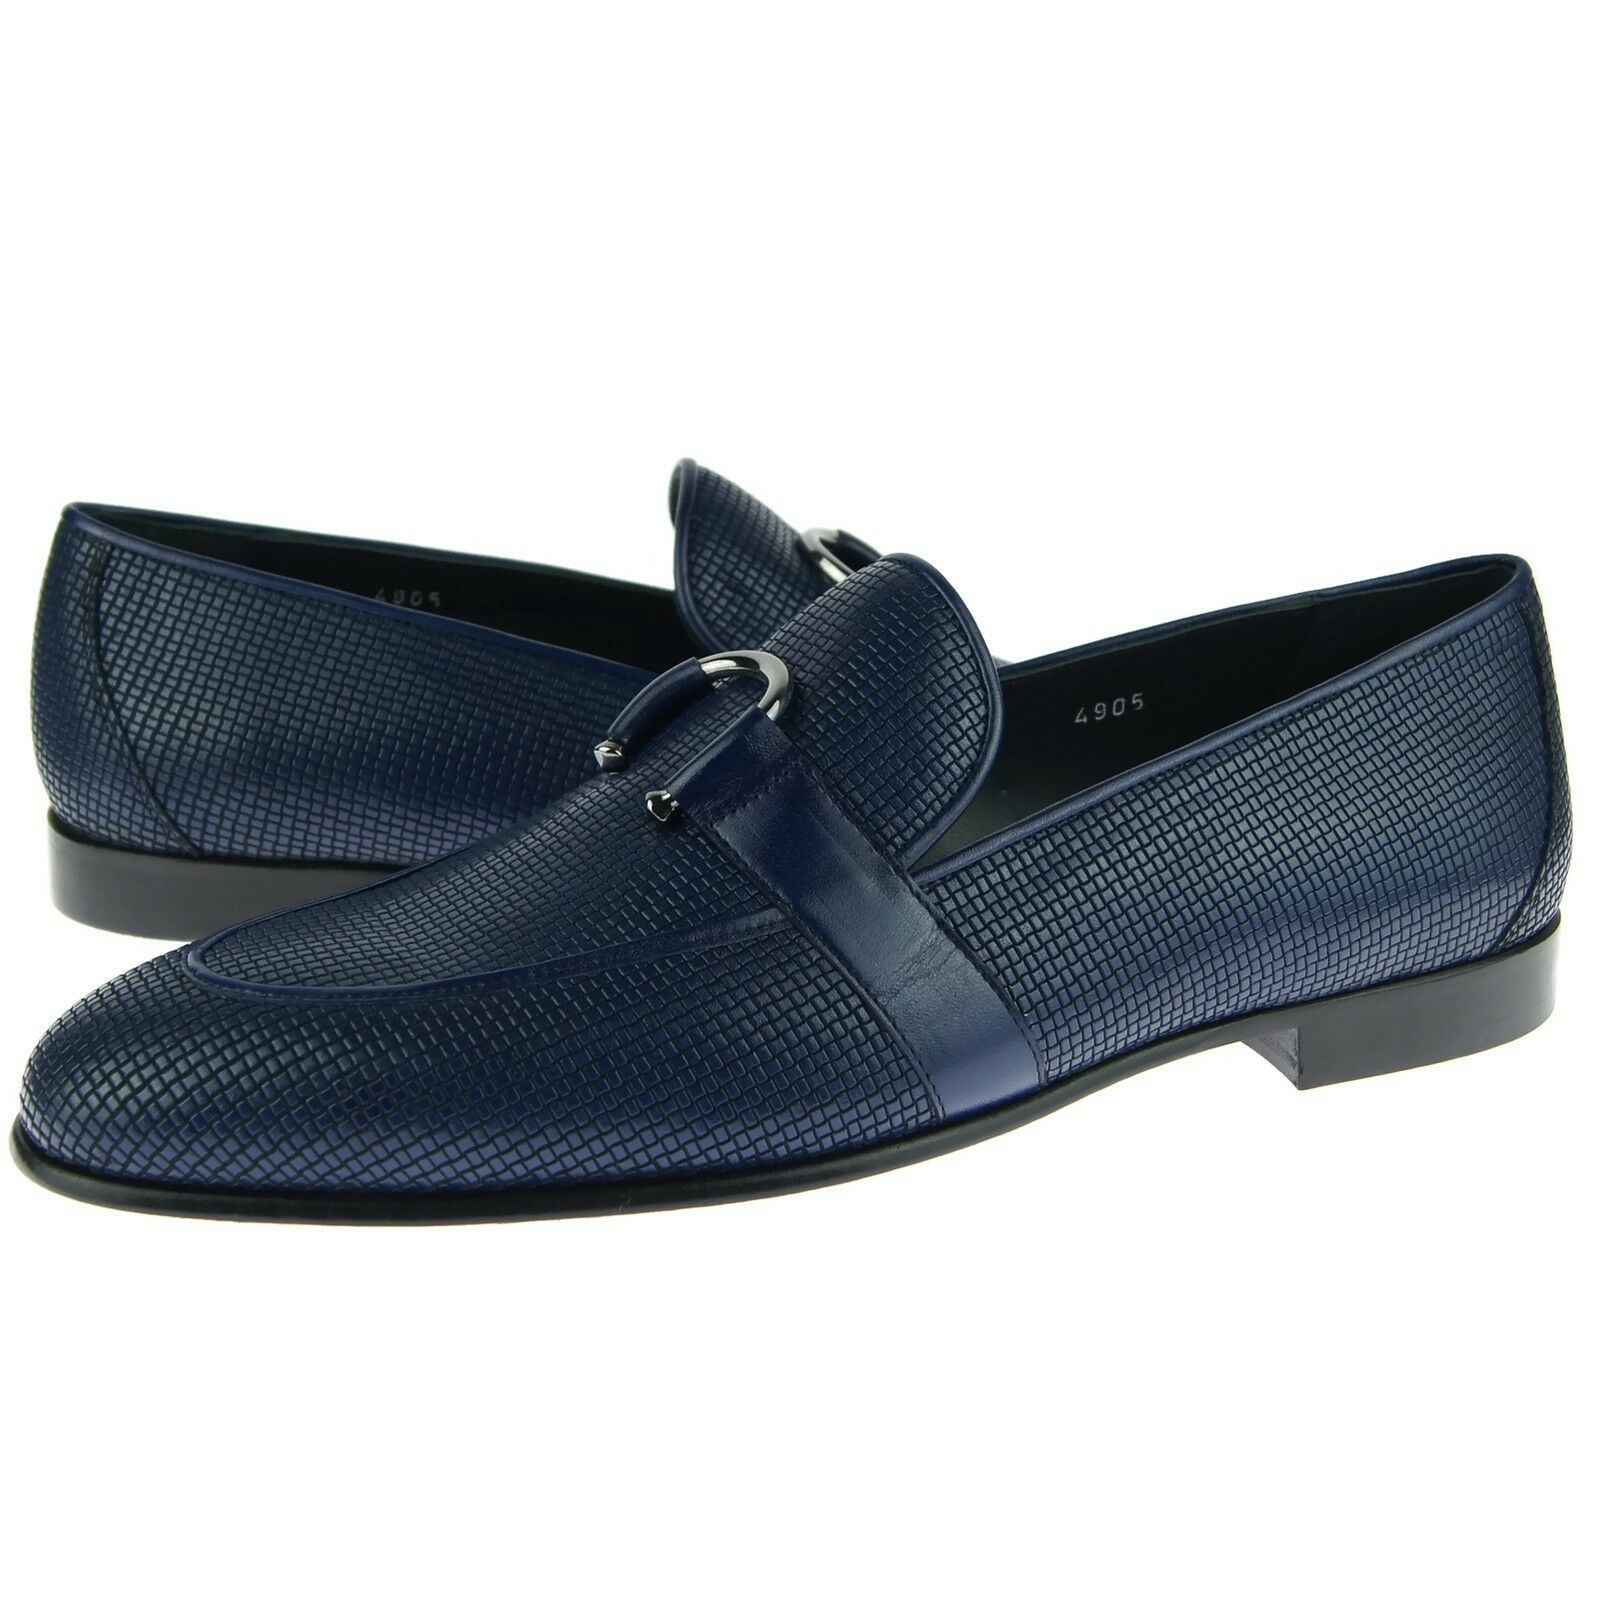 Corrente 4905 Woven Bit Loafer, Men's Slip-on Leather Shoes, Blue 7US/39EU